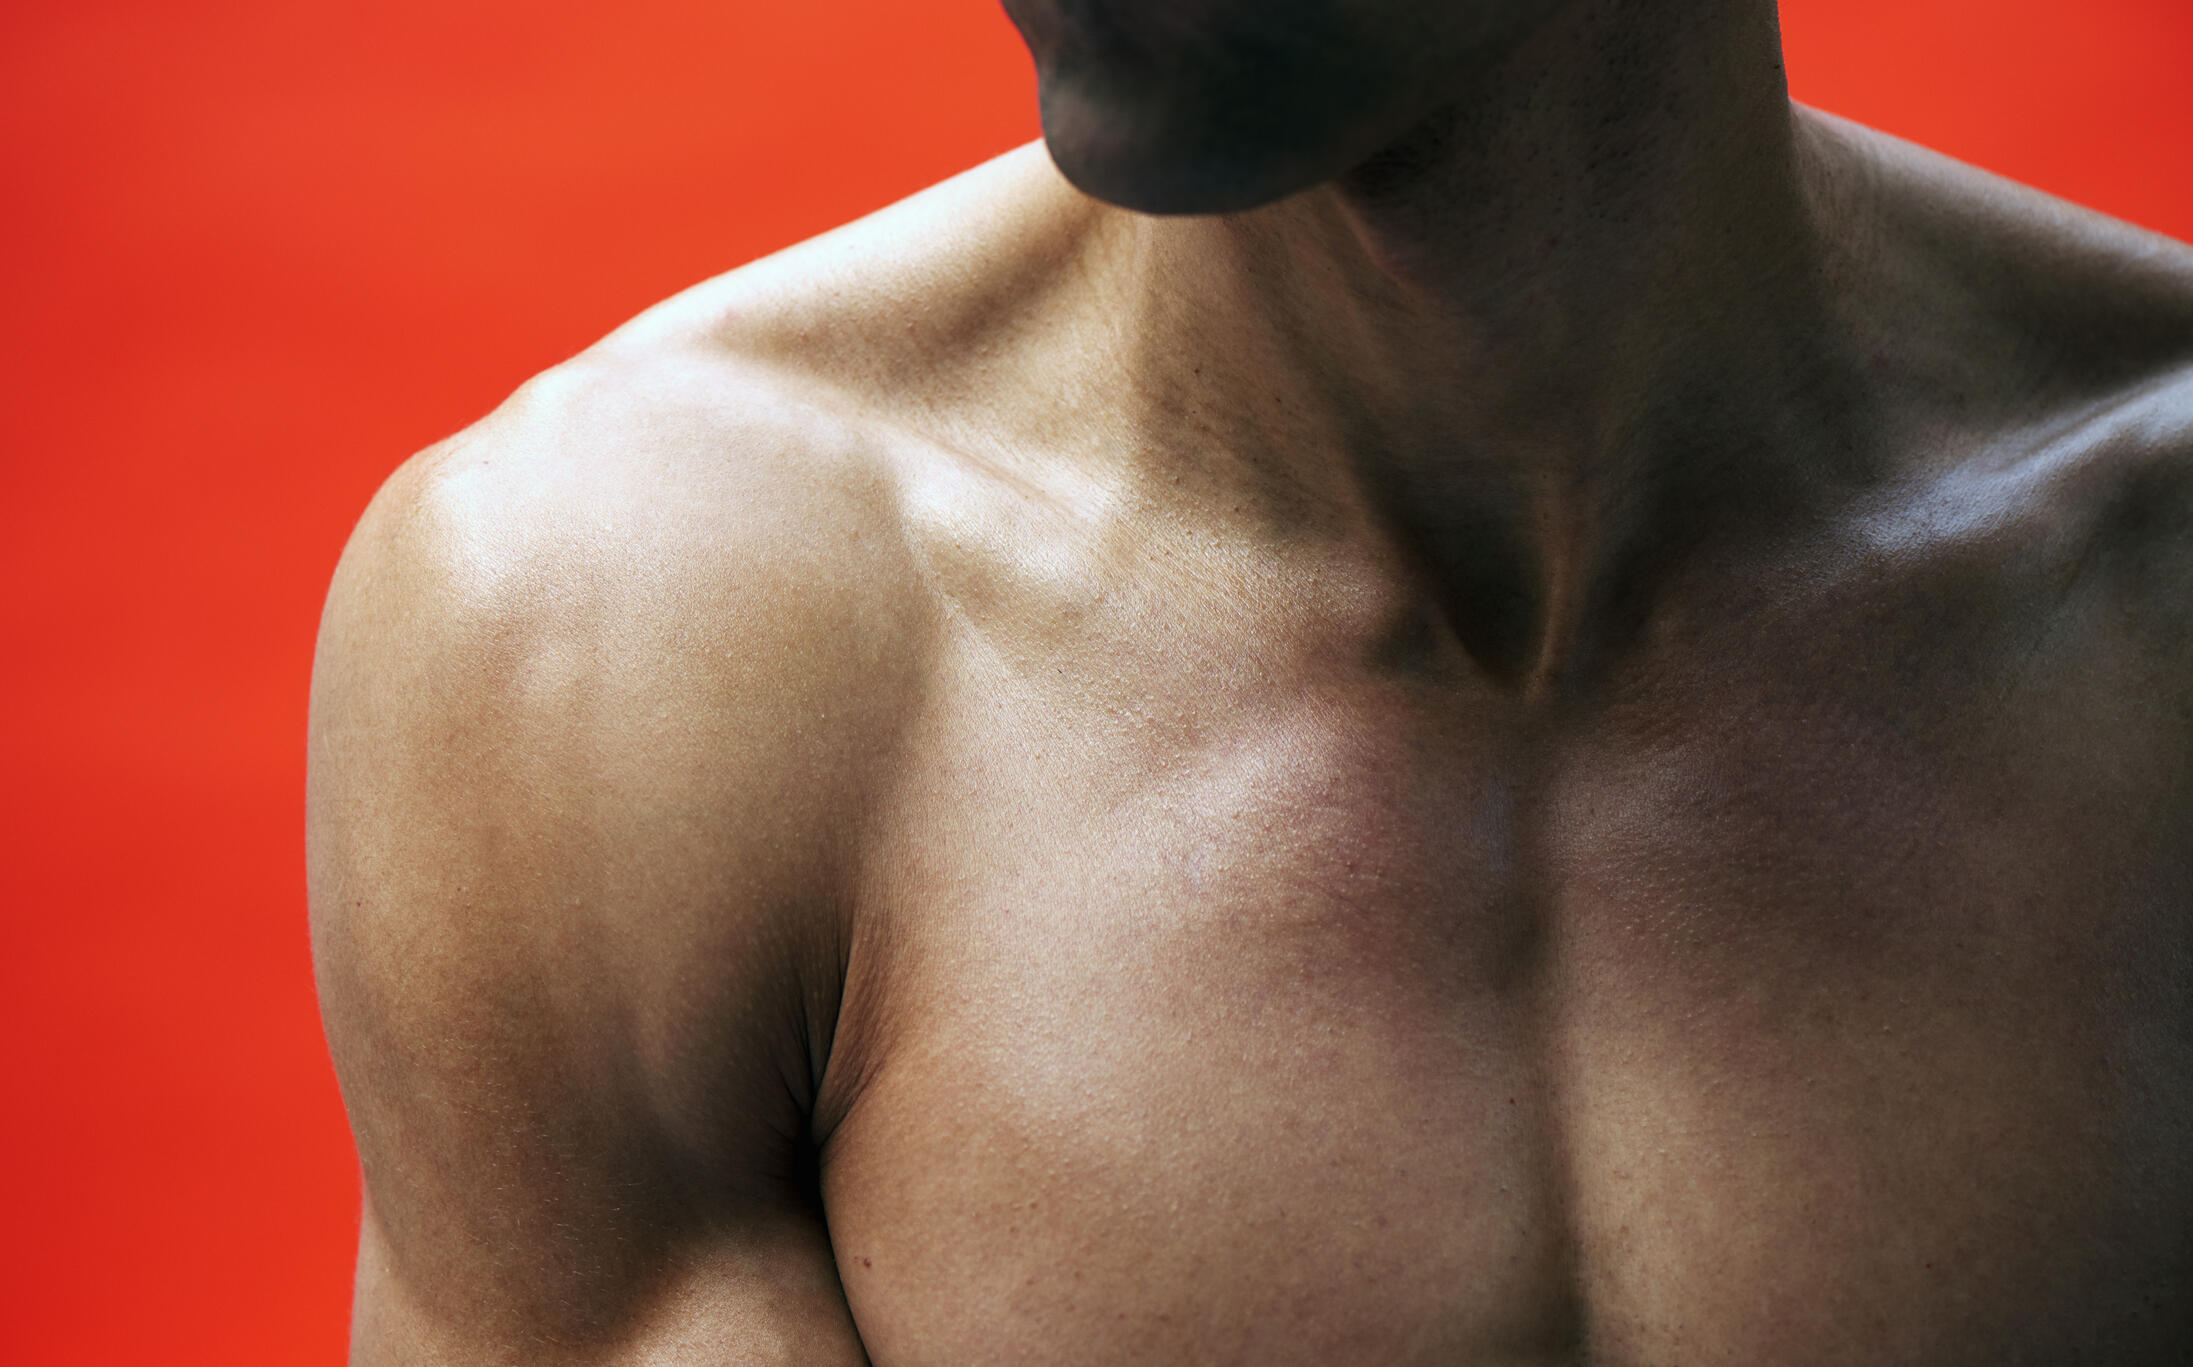 close up of a man's muscular chest on a red background